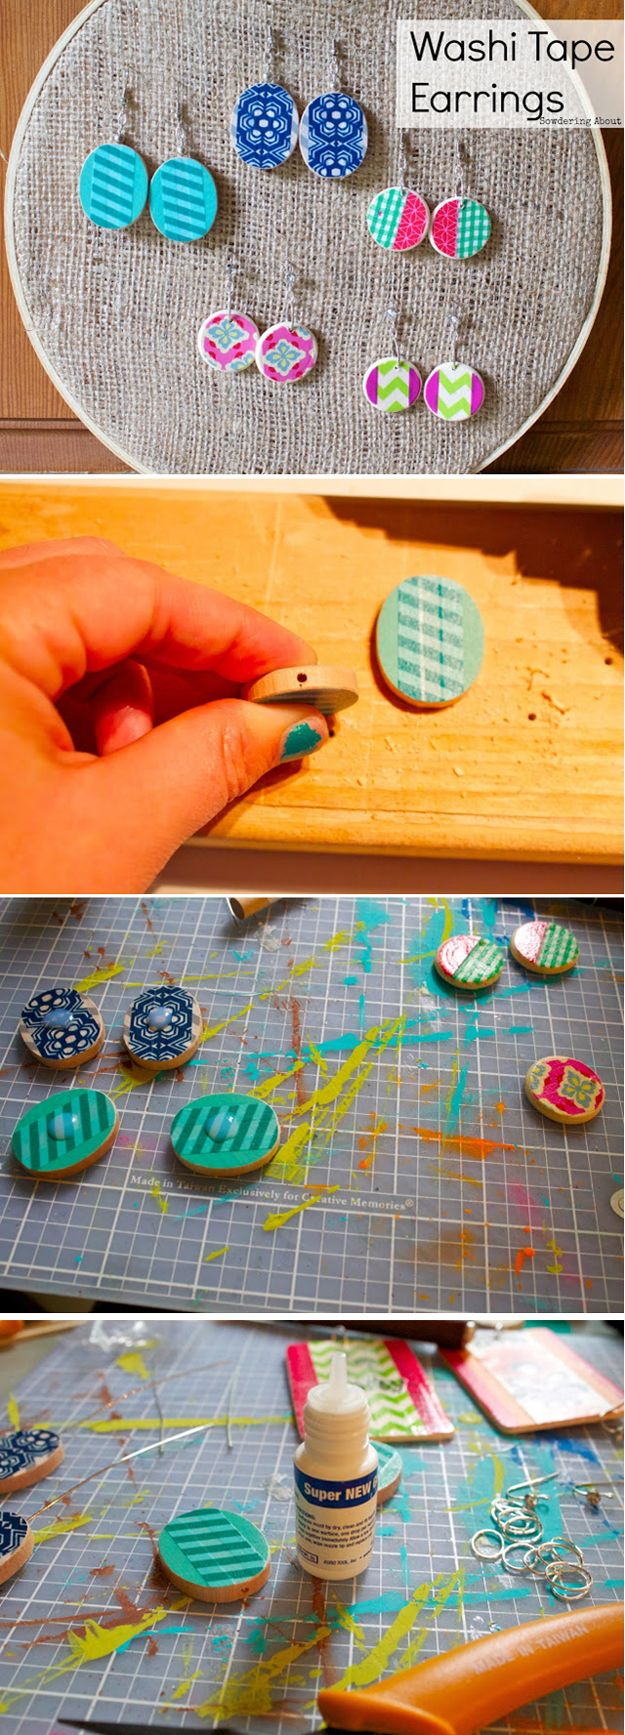 Cheap and Creative DIY Jewelry with Washi Tape | http://diyready.com/100-creative-ways-to-use-washi-tape/